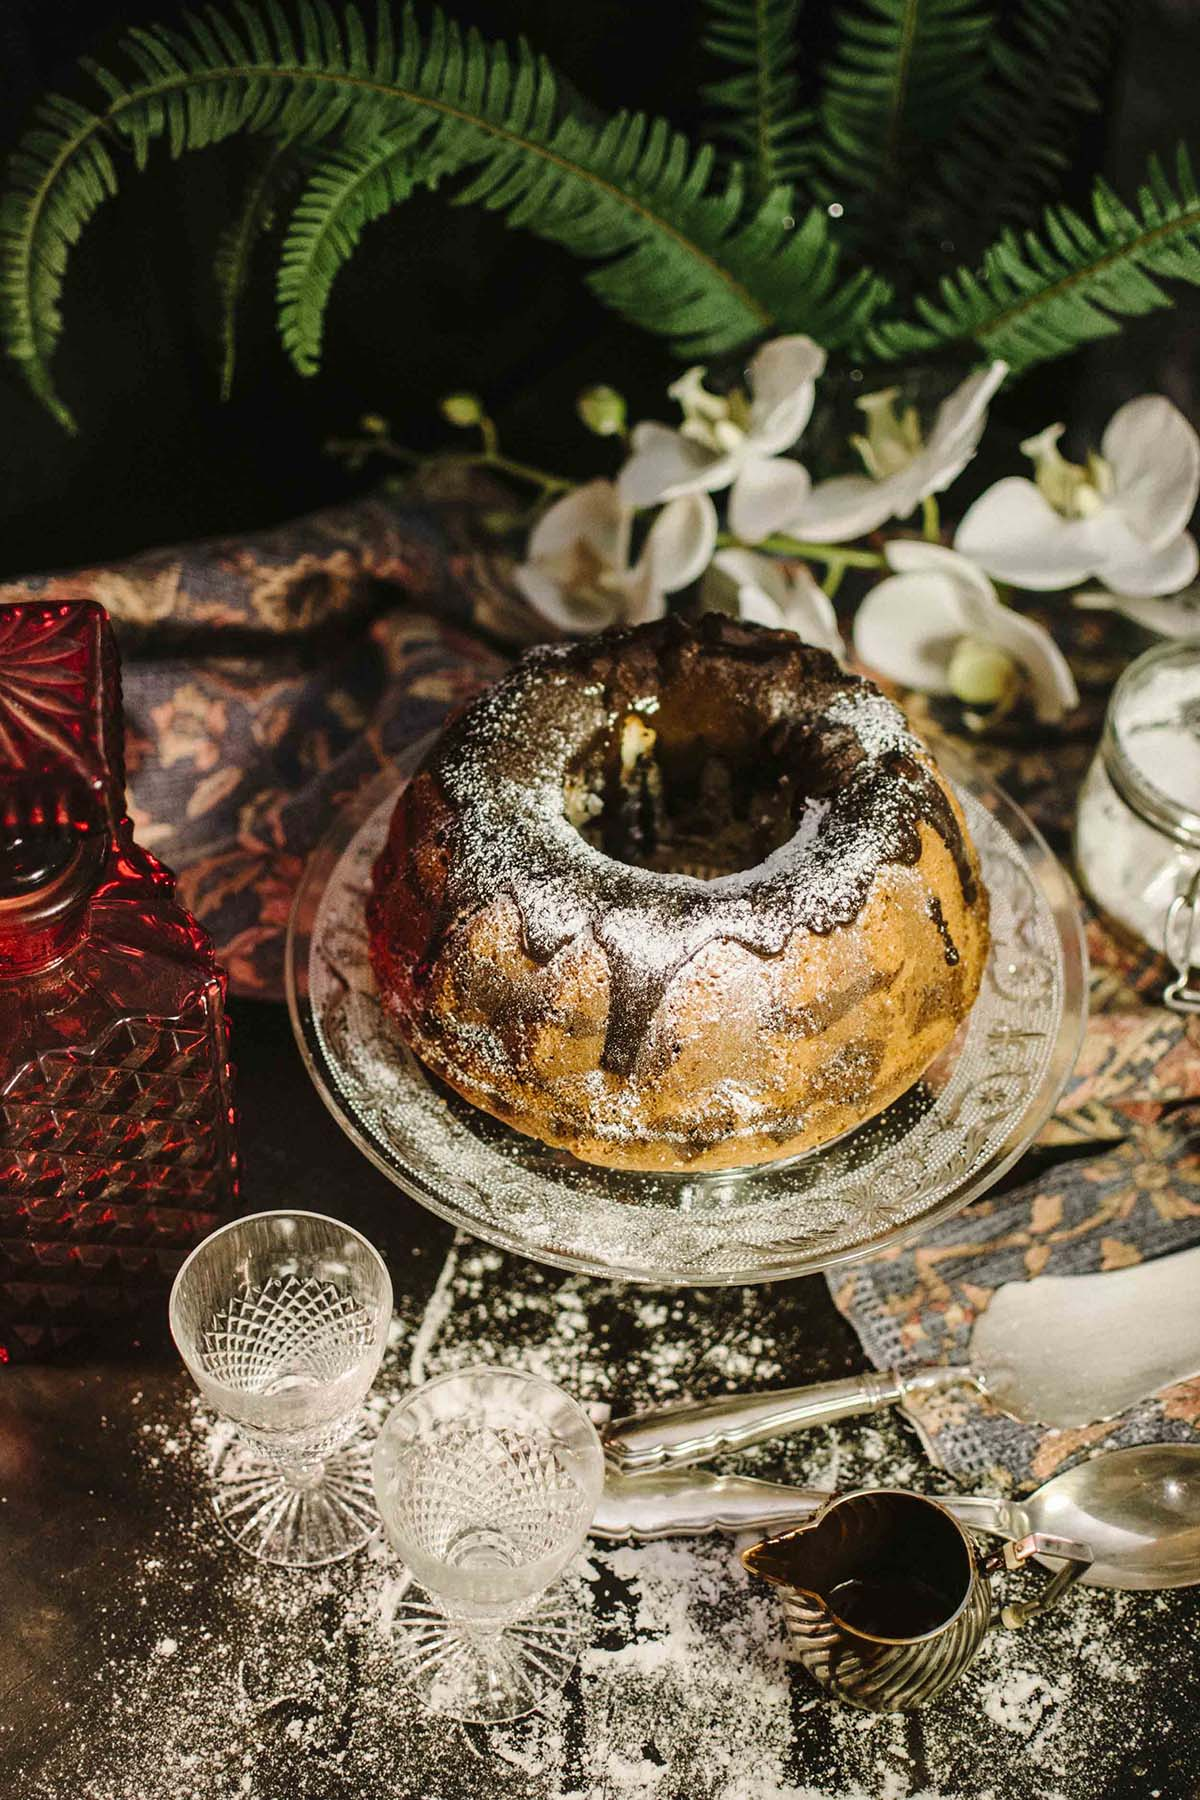 Food Photography (Rezept: Marmorgugelhupf) by Magdalena Weiss